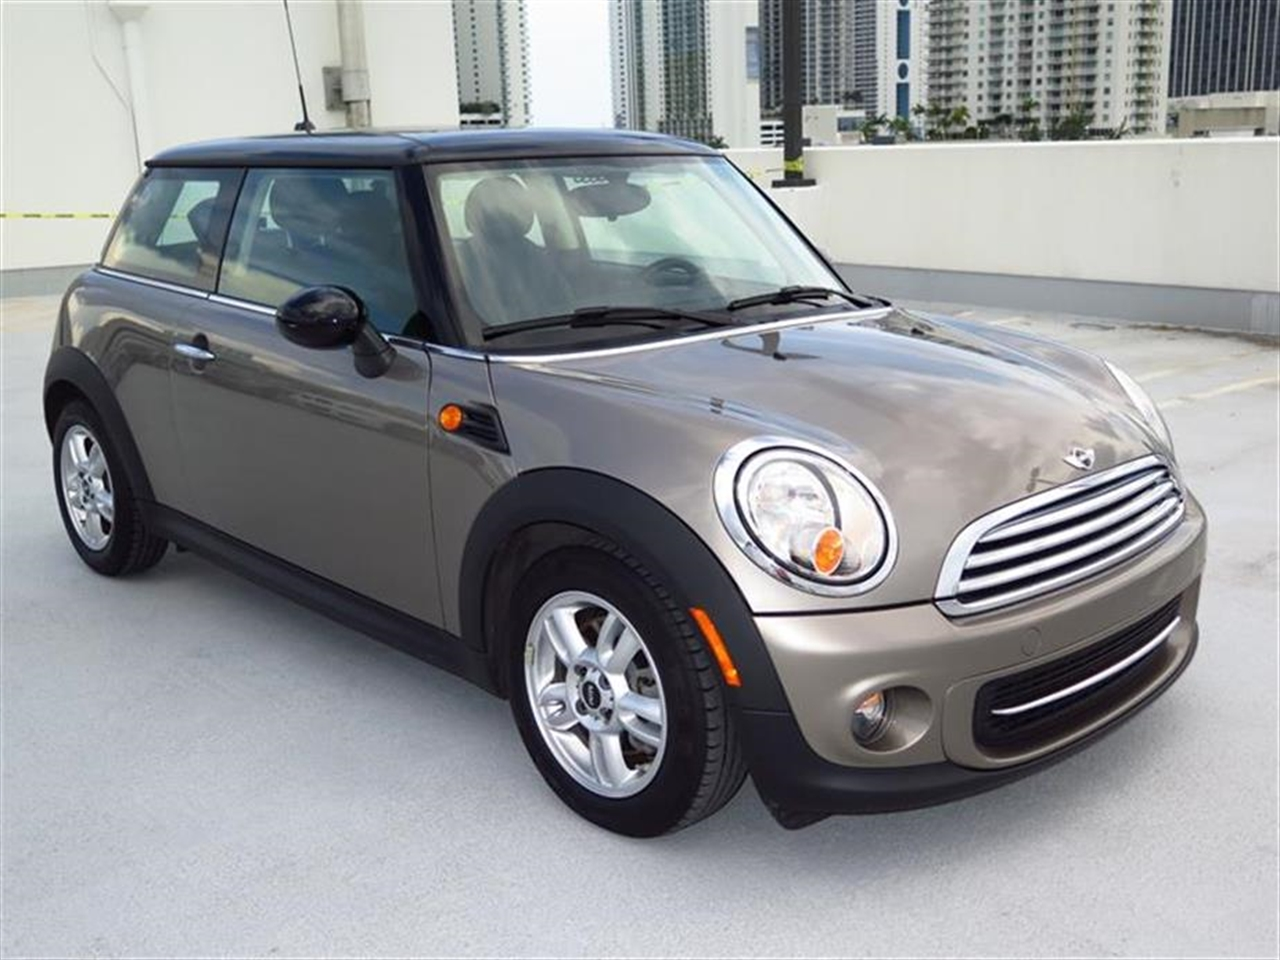 2013 MINI COOPER 2dr Cpe 8116 miles 1 rear cup holder 12V auxiliary pwr outlet in cockpit  lug